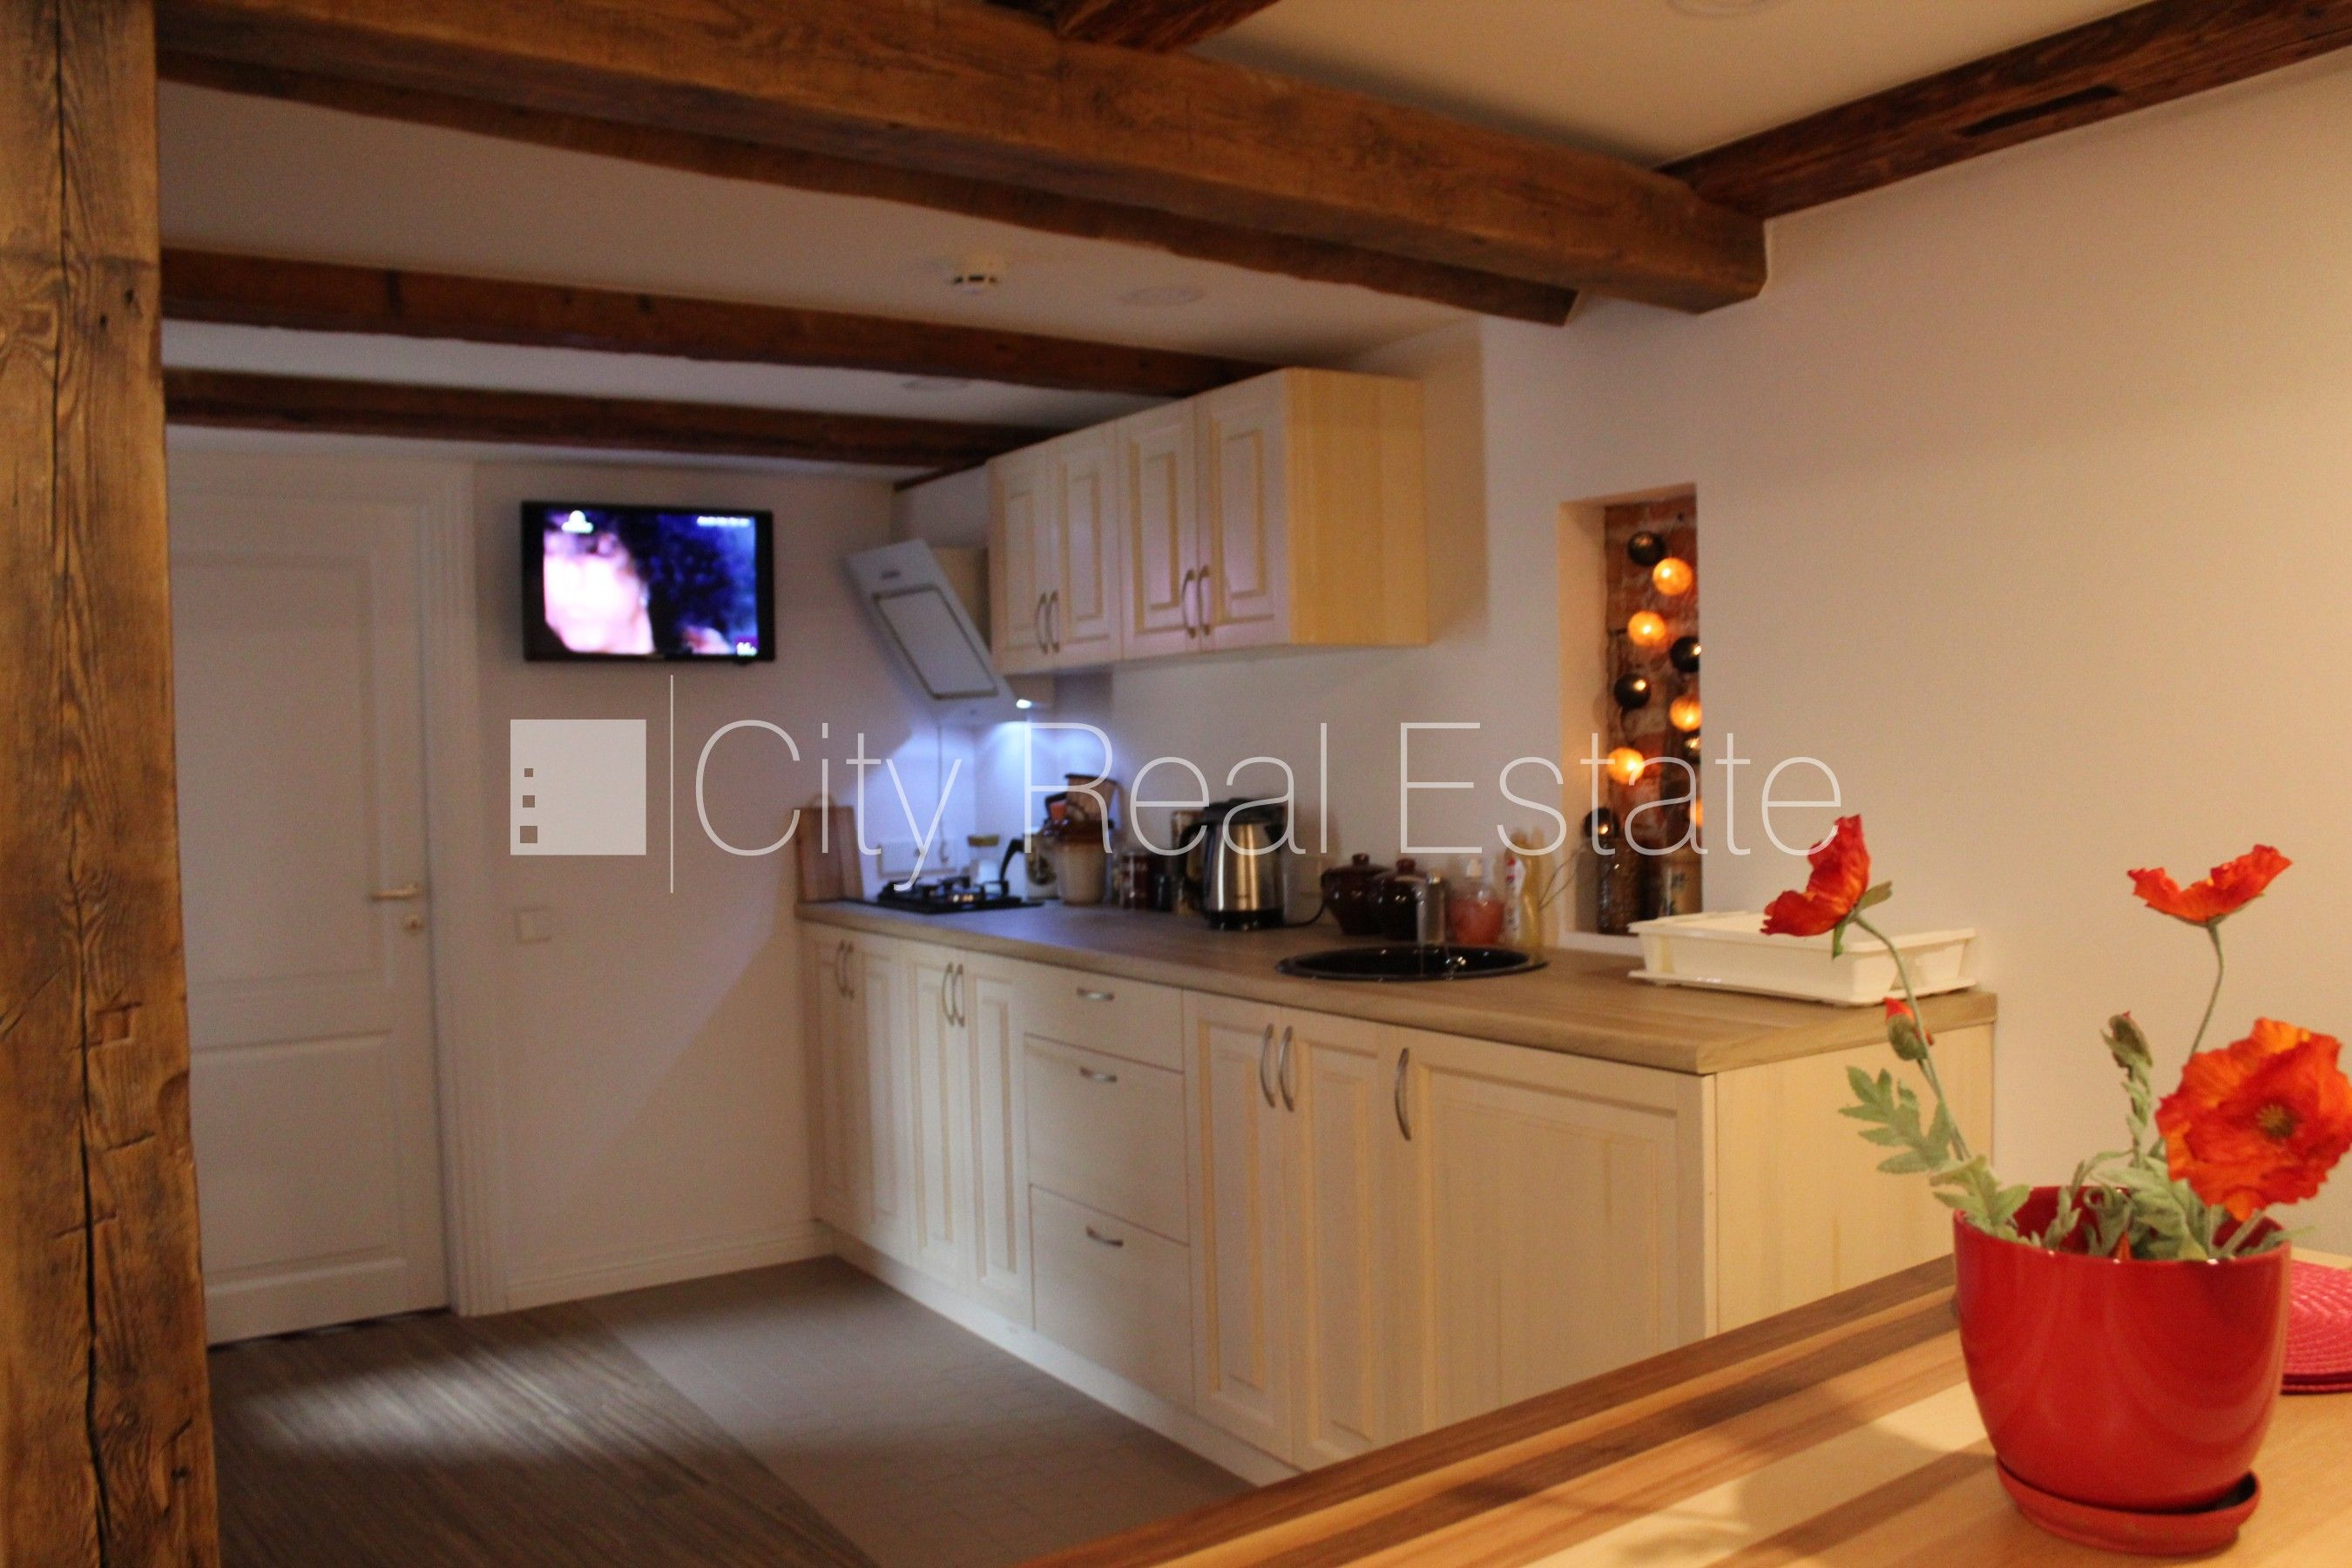 Apartment for rent in Riga, Vecriga (Old Riga), 80 m2, 1800.00 EUR